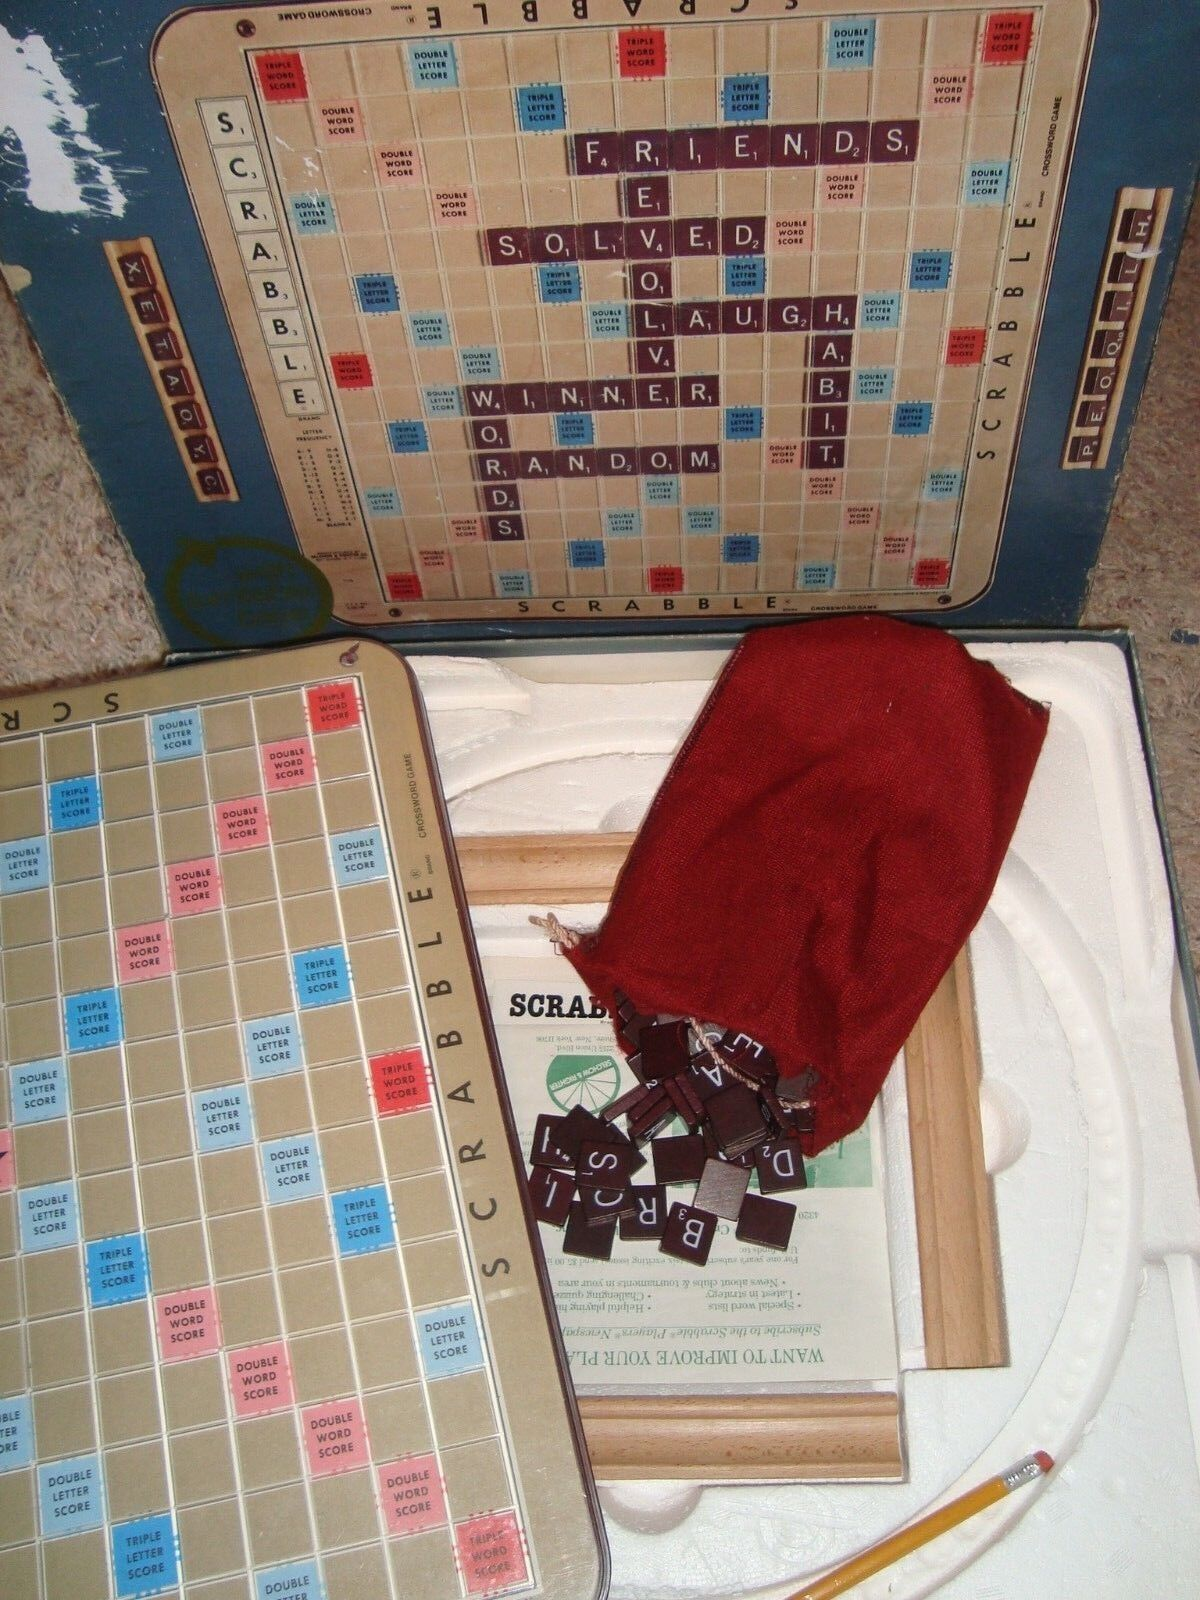 VINTAGE 1977 SCRABBLE DELUXE EDITION CROSSWORD GAME TURNTABLE SELCHOW &RICHTER